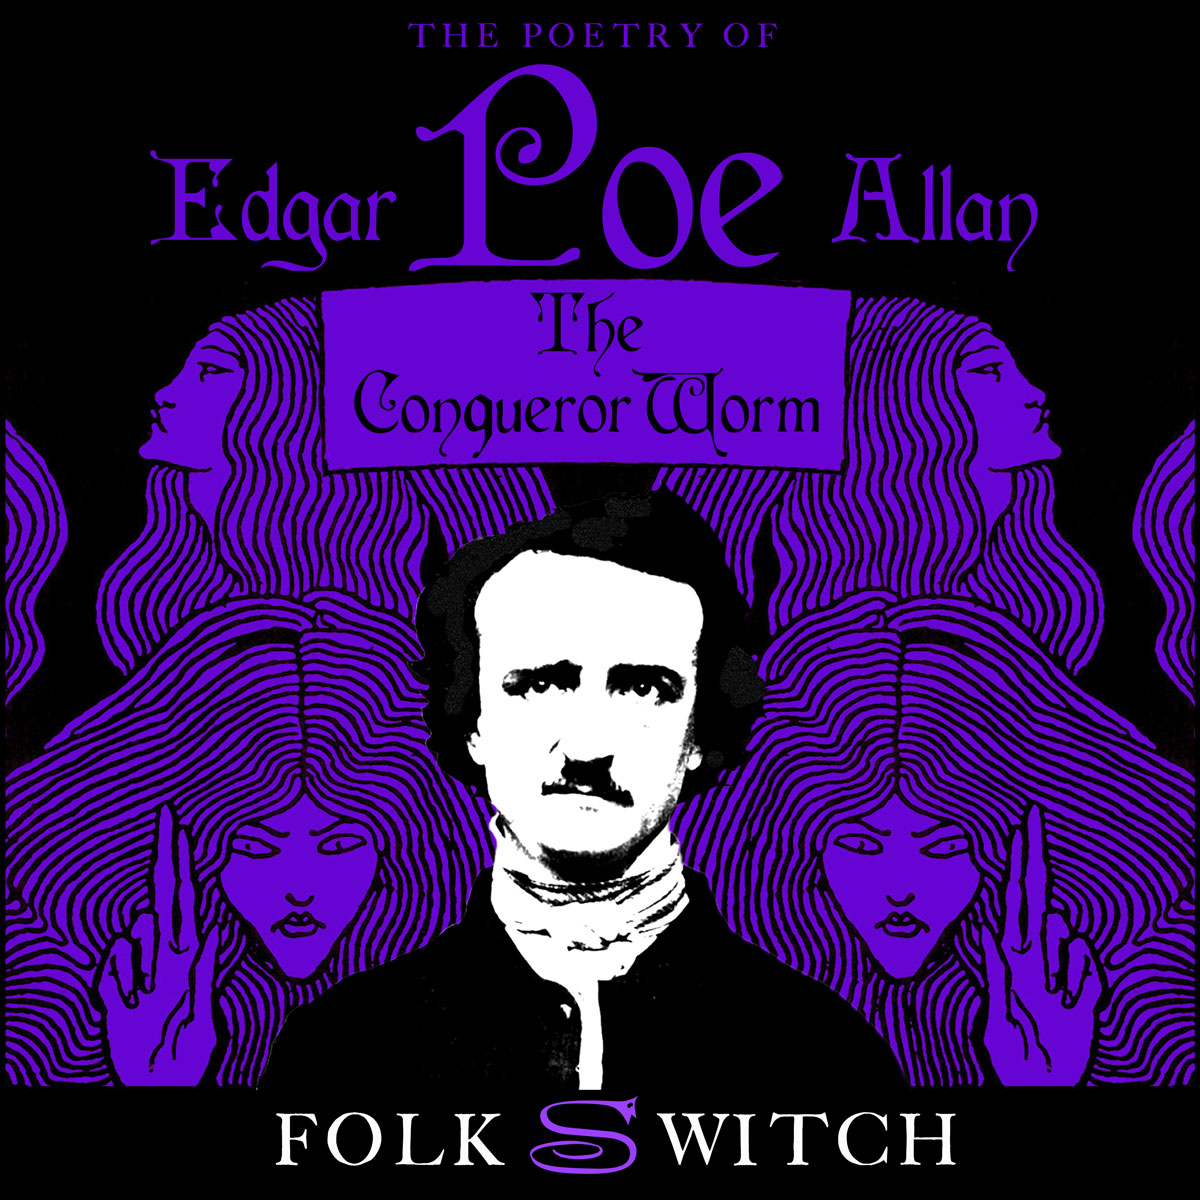 Poe's poetry brought to musical and visual life: The Conqueror Worm by Folkswitch